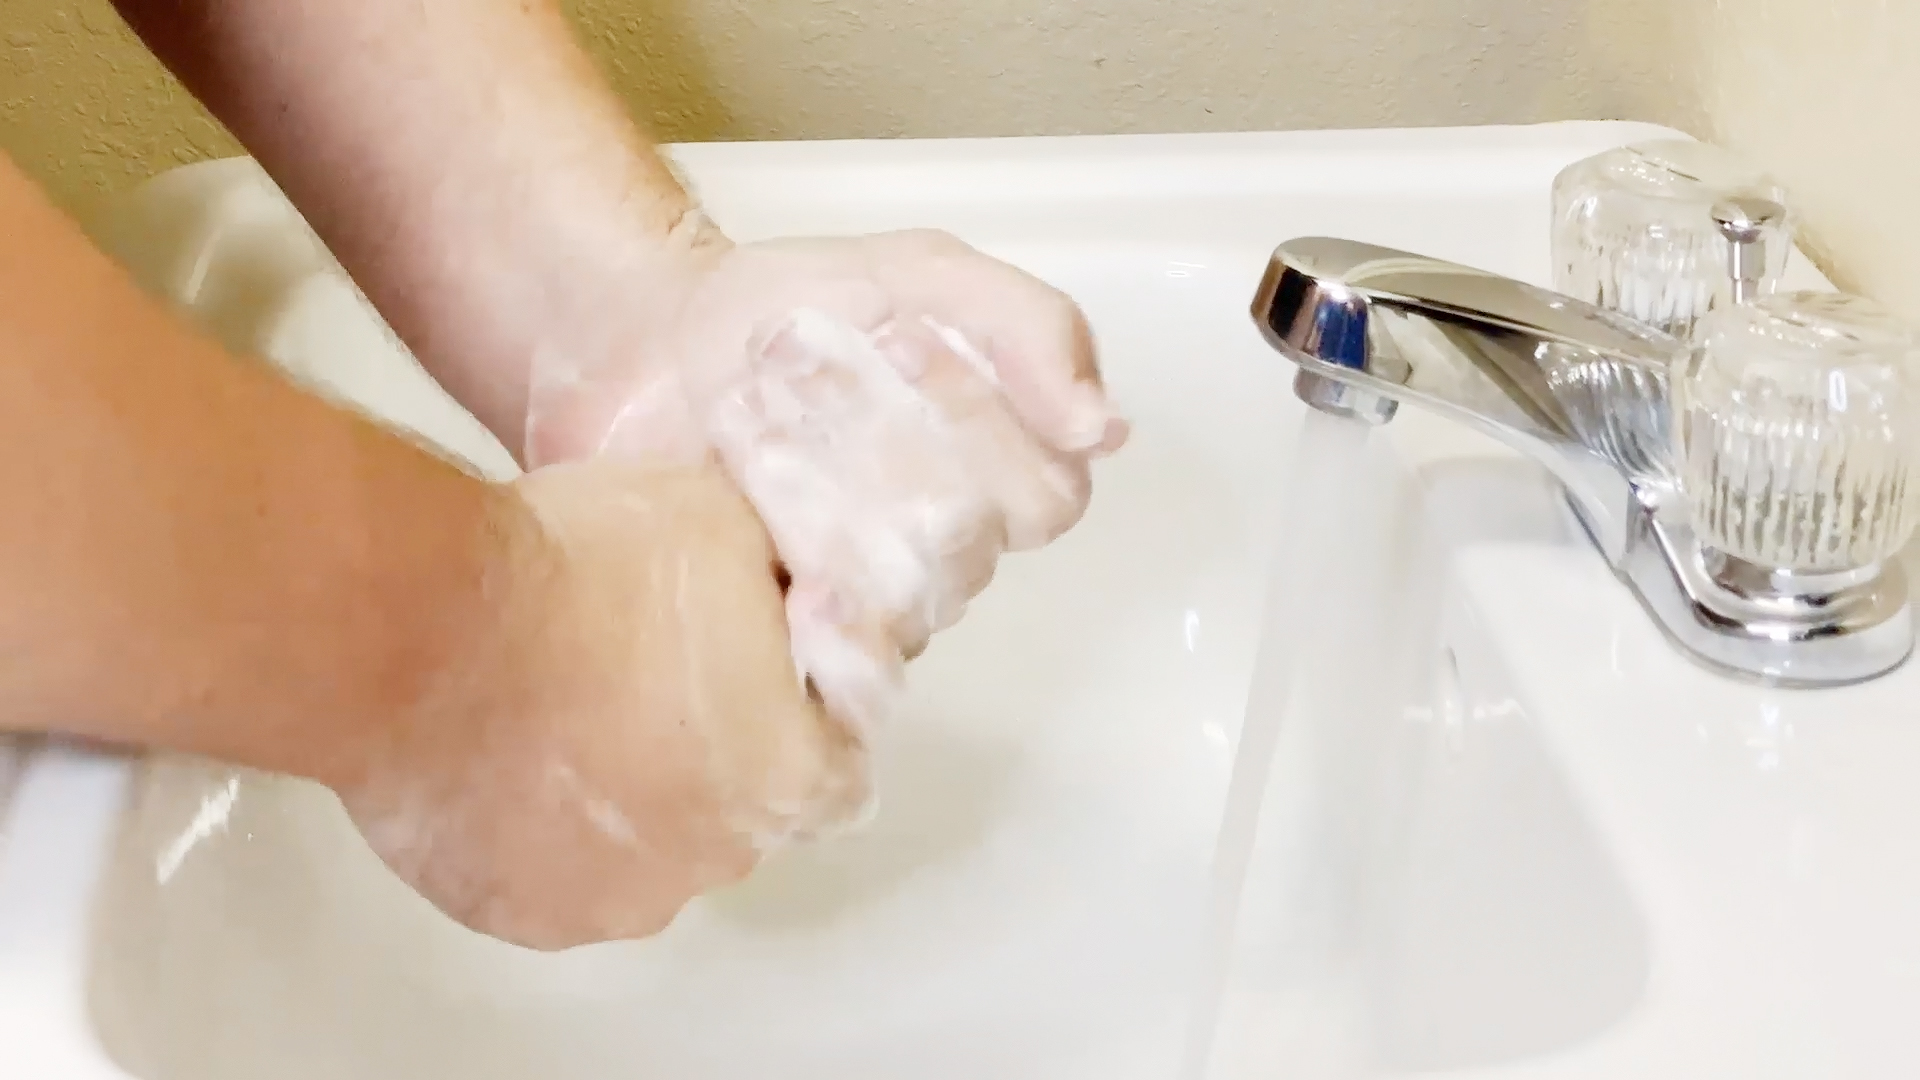 Wash hand, clean hands, sanitize hands, sanitize work areas